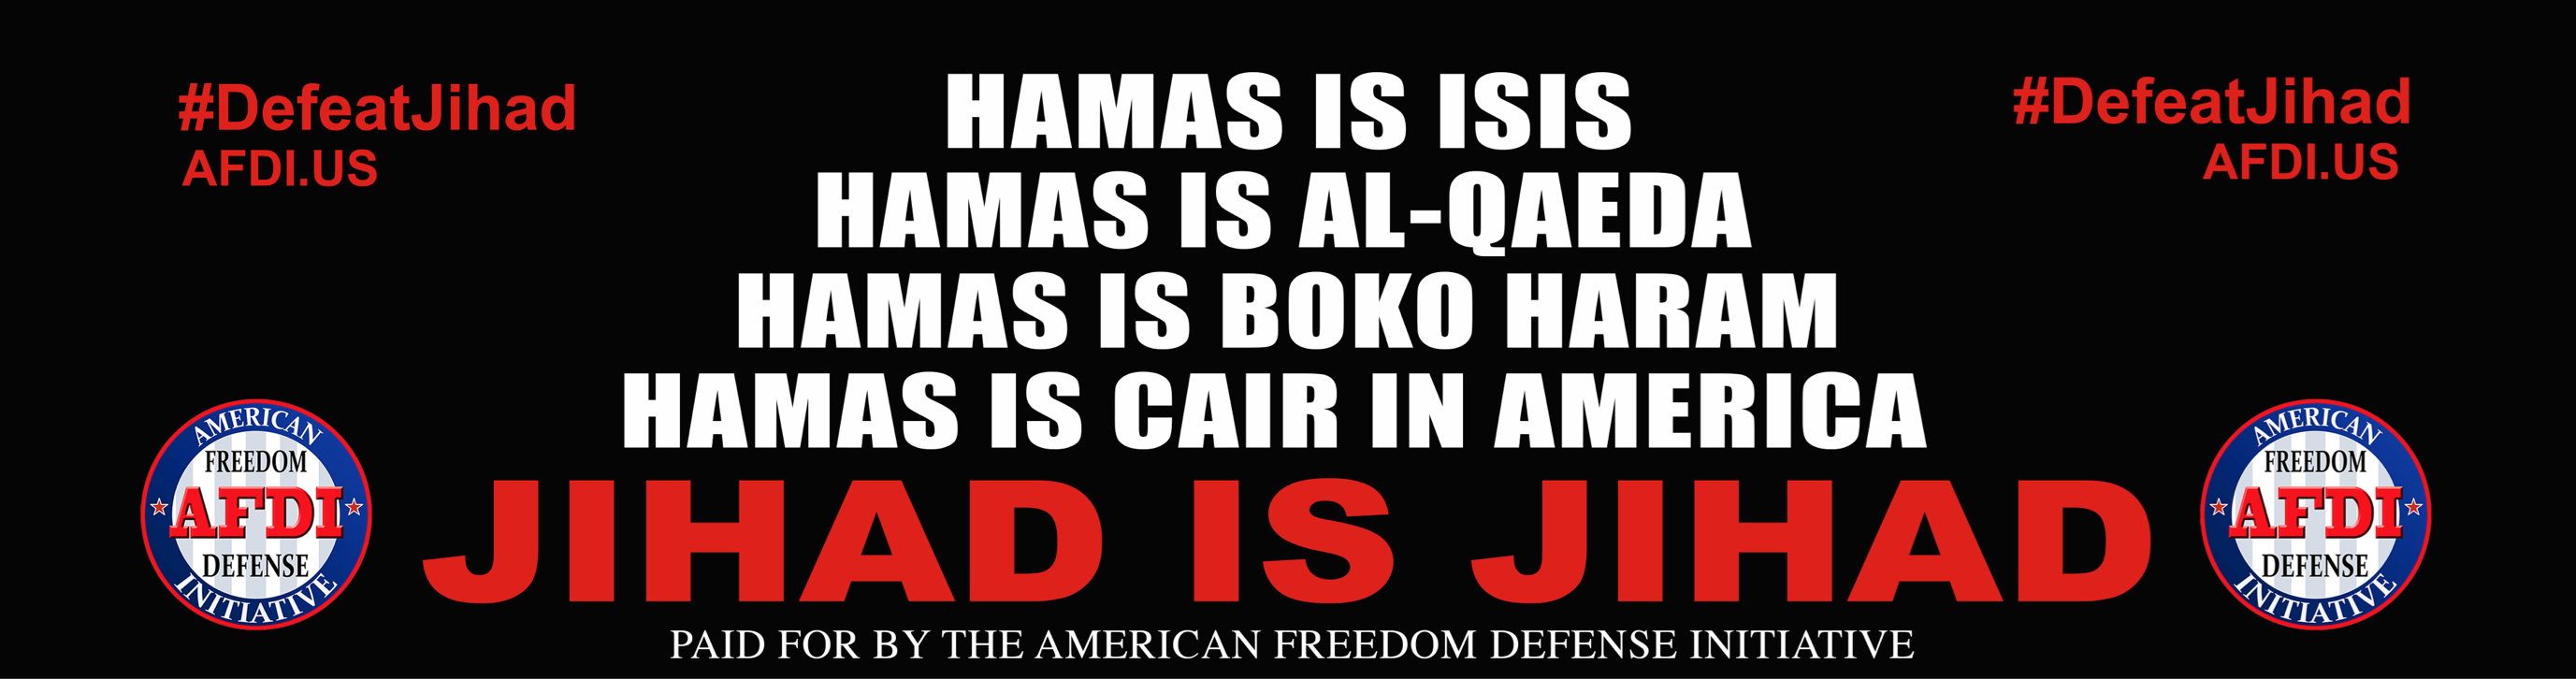 Al qaeda and their beliefs